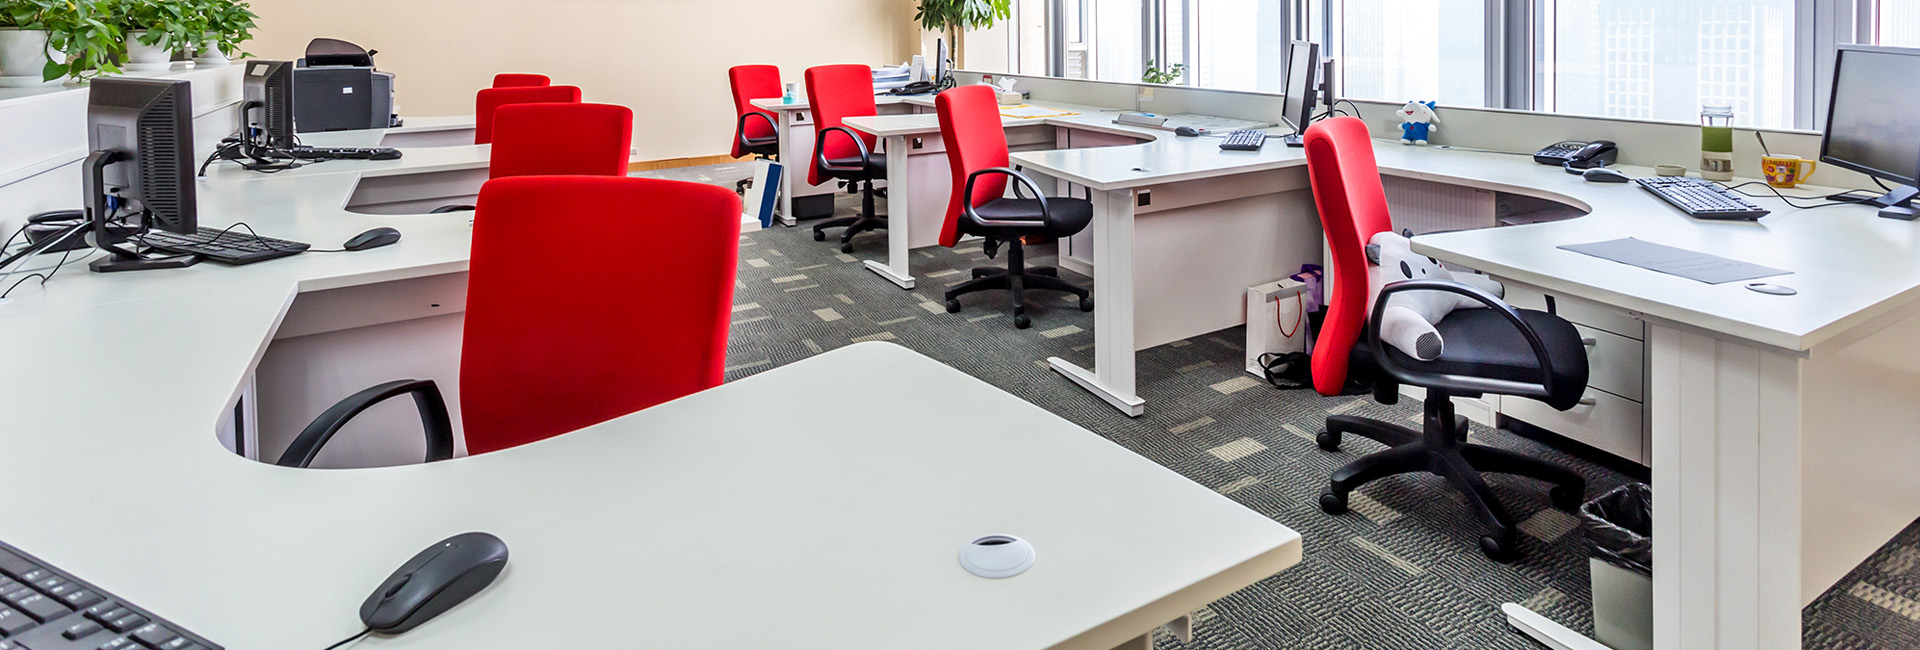 Direct Office Furniture in Maryland - Chairs, Desks, Workstations ...